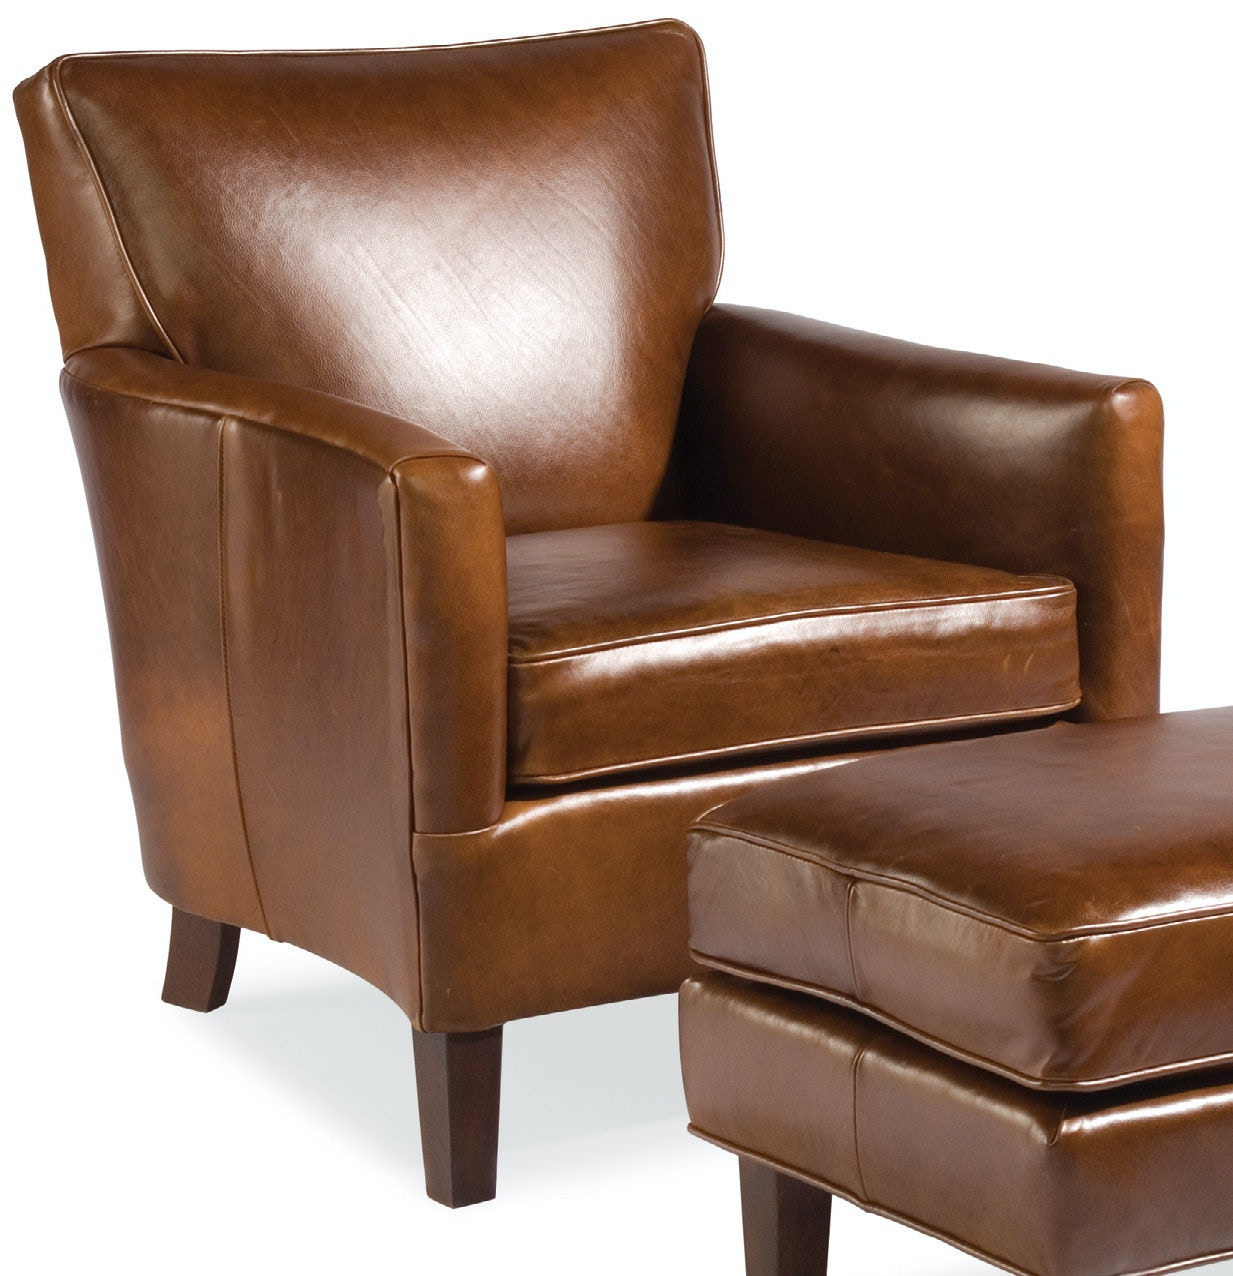 Sam Moore Chairs Sam Moore Living Room Nigel Club Chair 1349 Callan Furniture